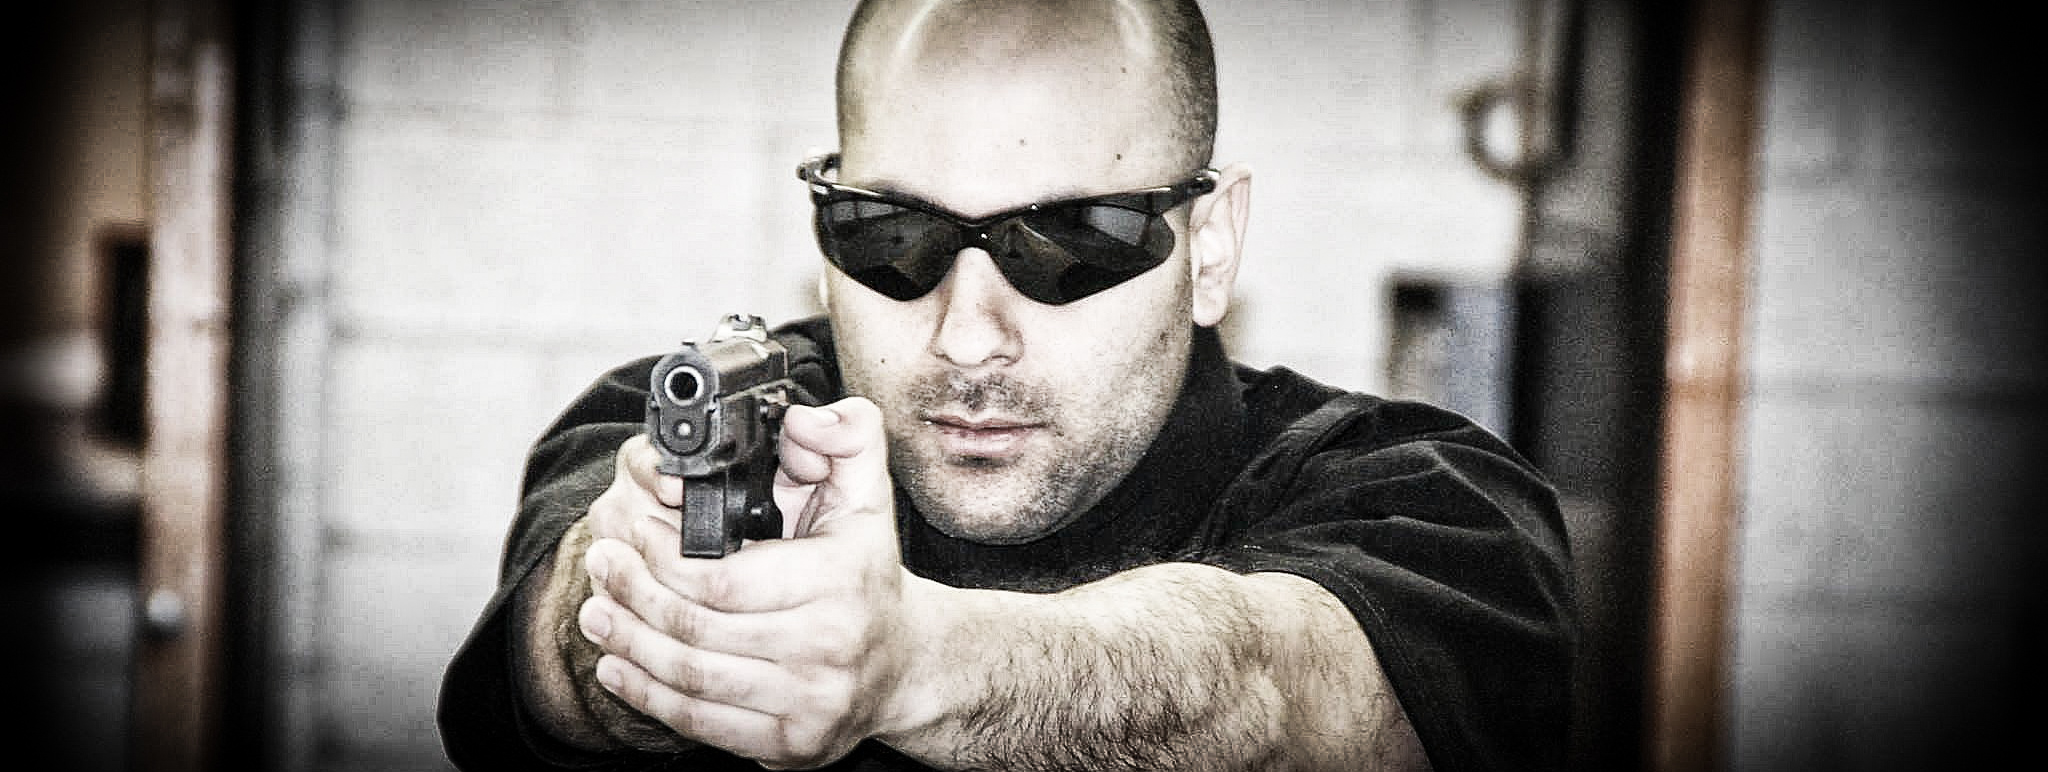 Defensive Handgun Firearm Training Class Course